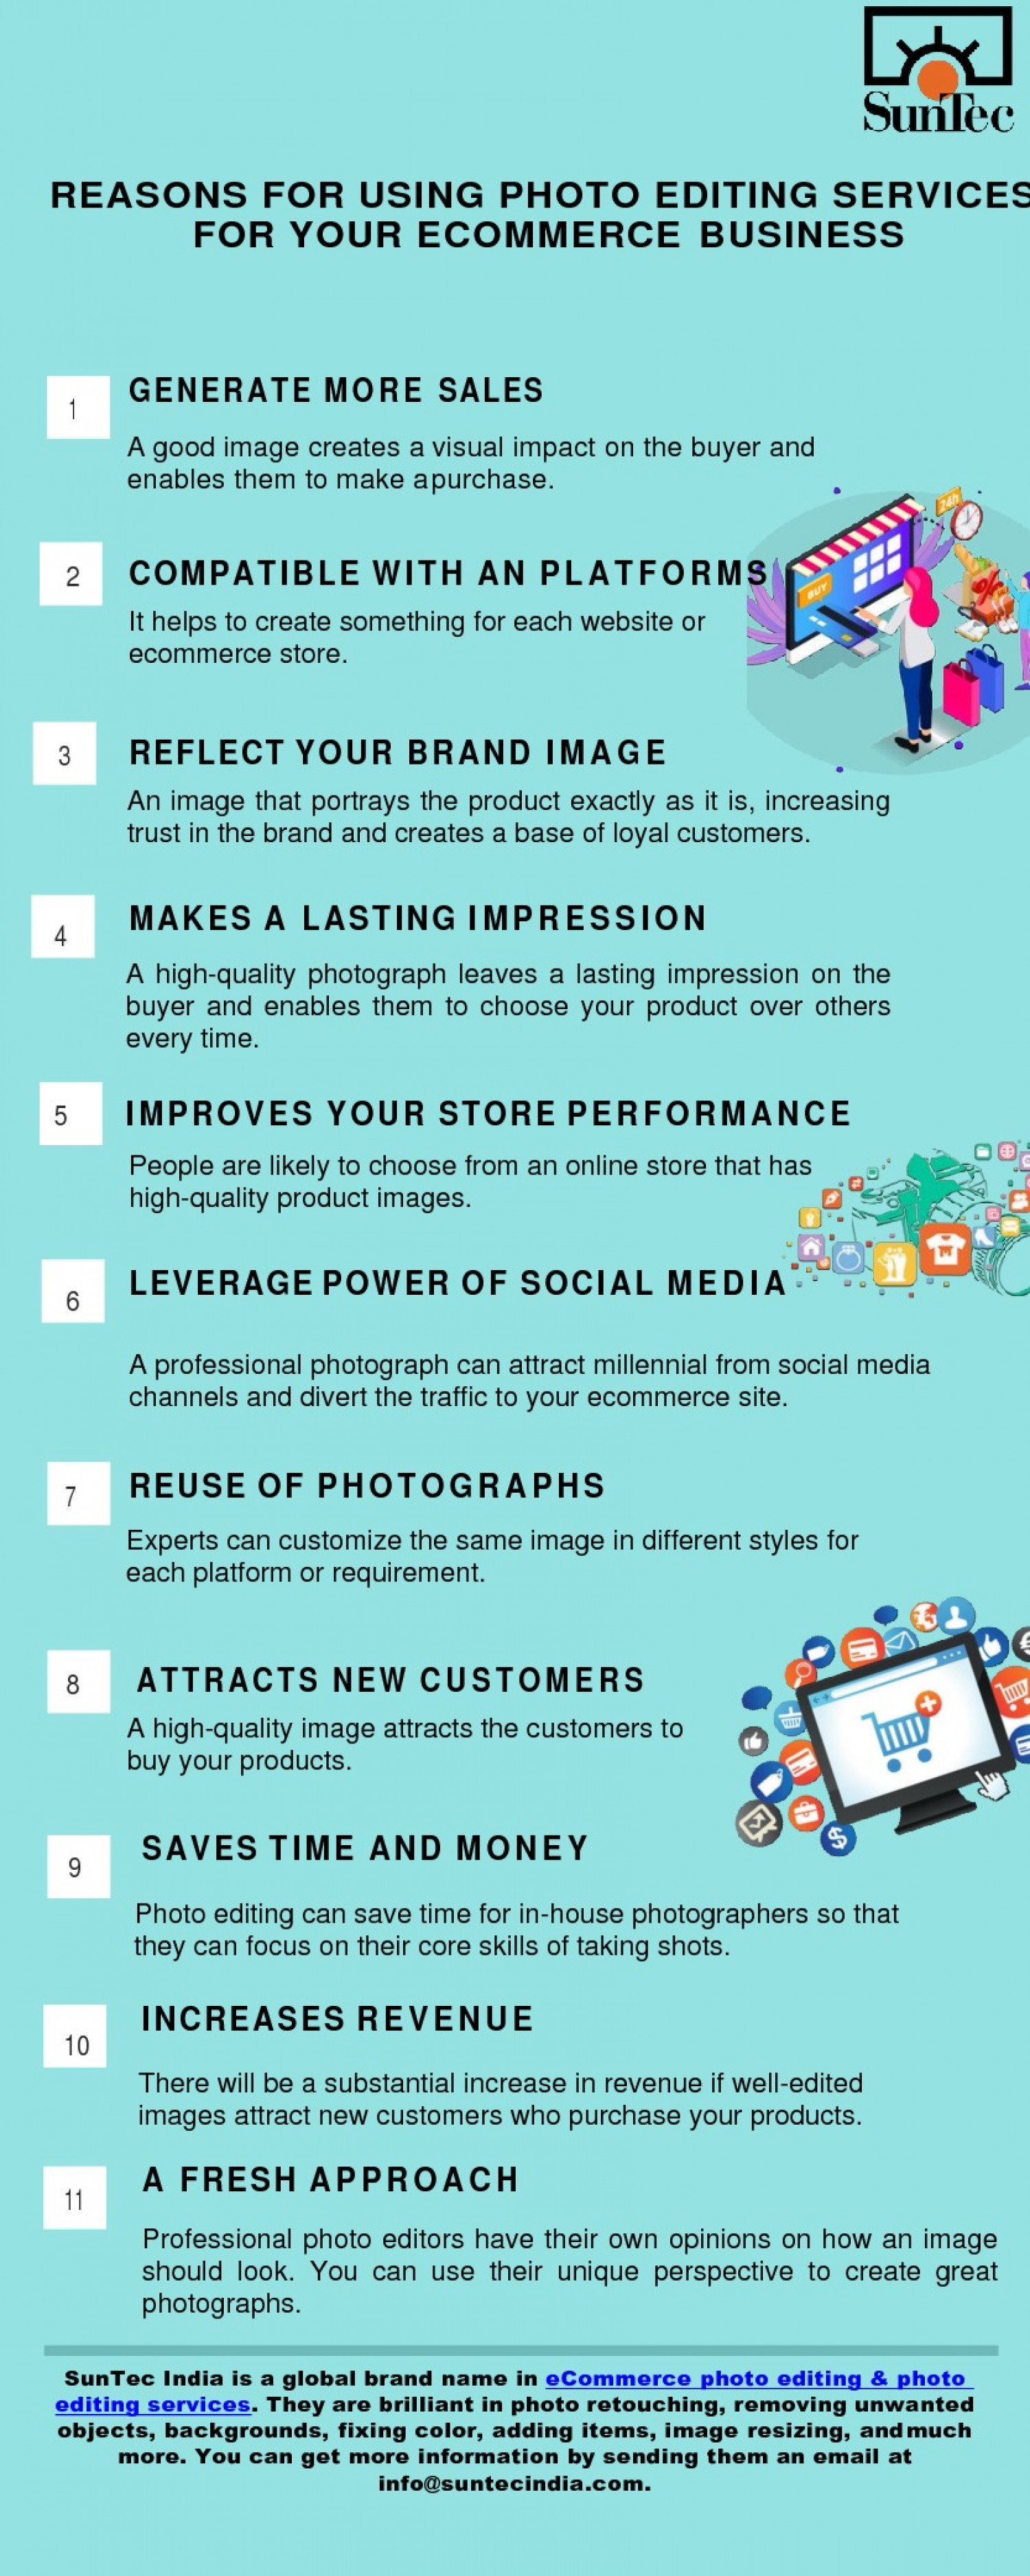 Top 14 Advantages of Using Photo Editing Services For Your eCommerce Business Infographic